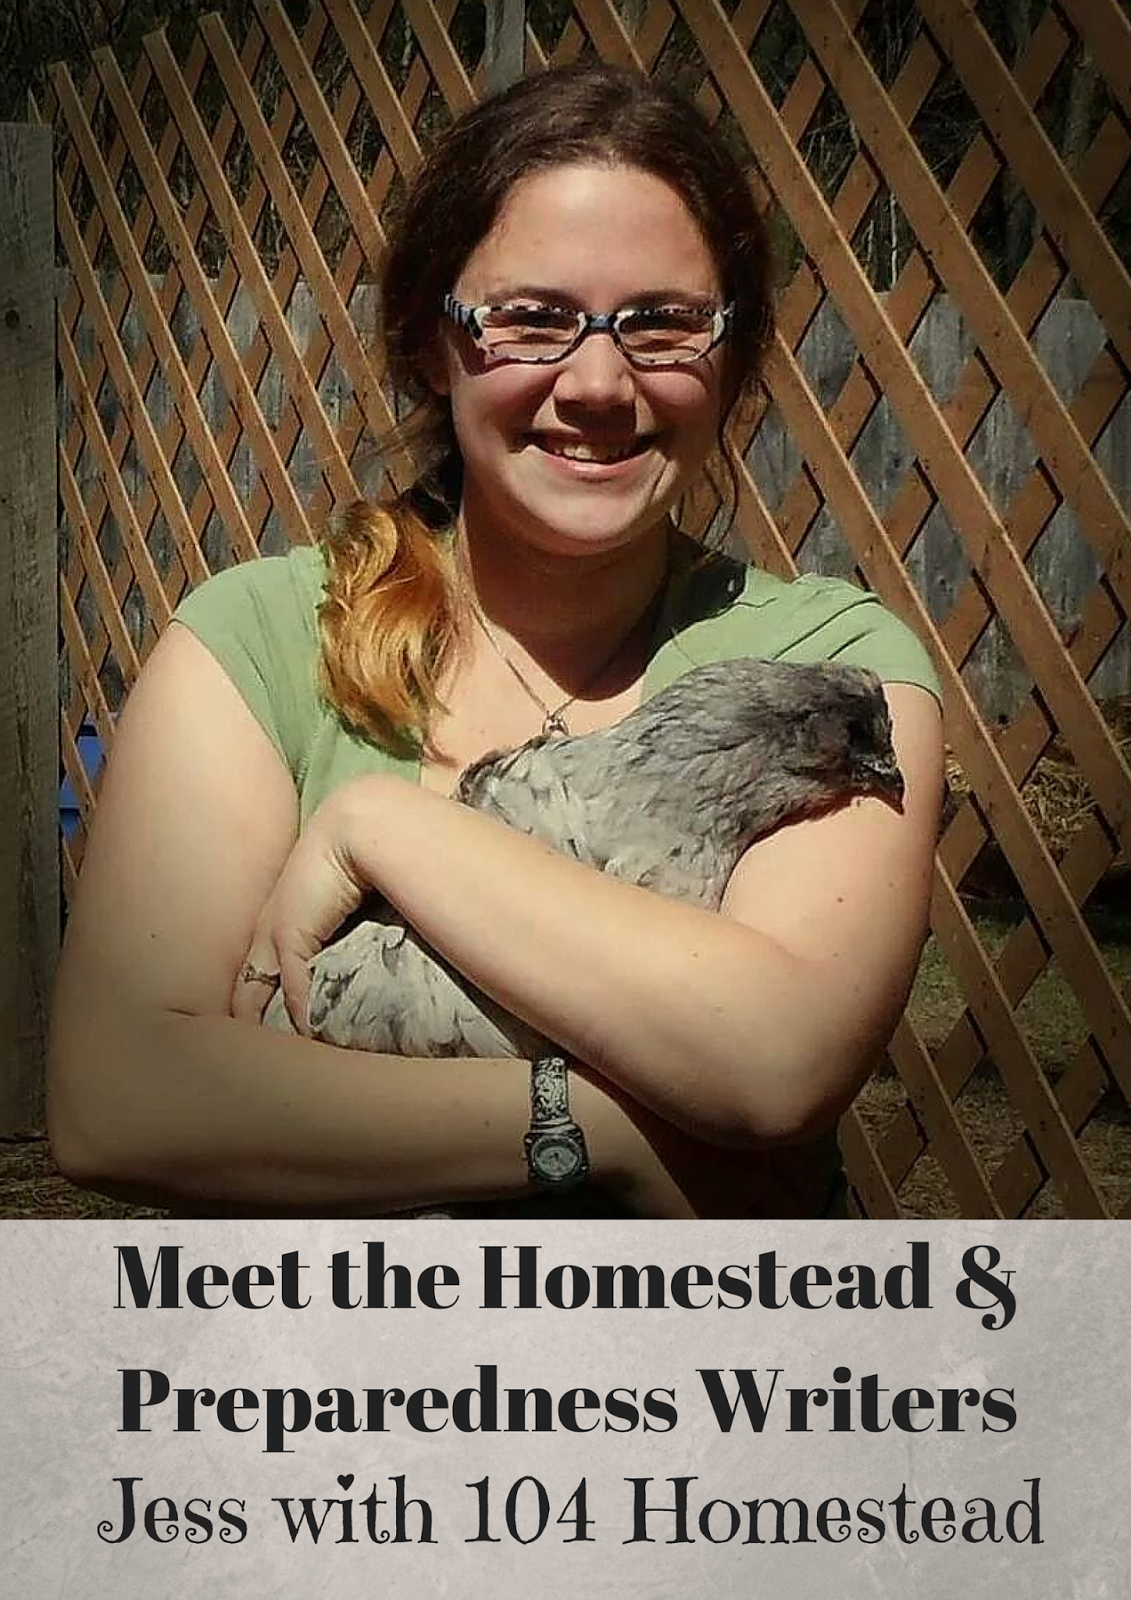 Meet the Homestead and Preparedness Writers Jess with 104 Homestead - The Rural Economist